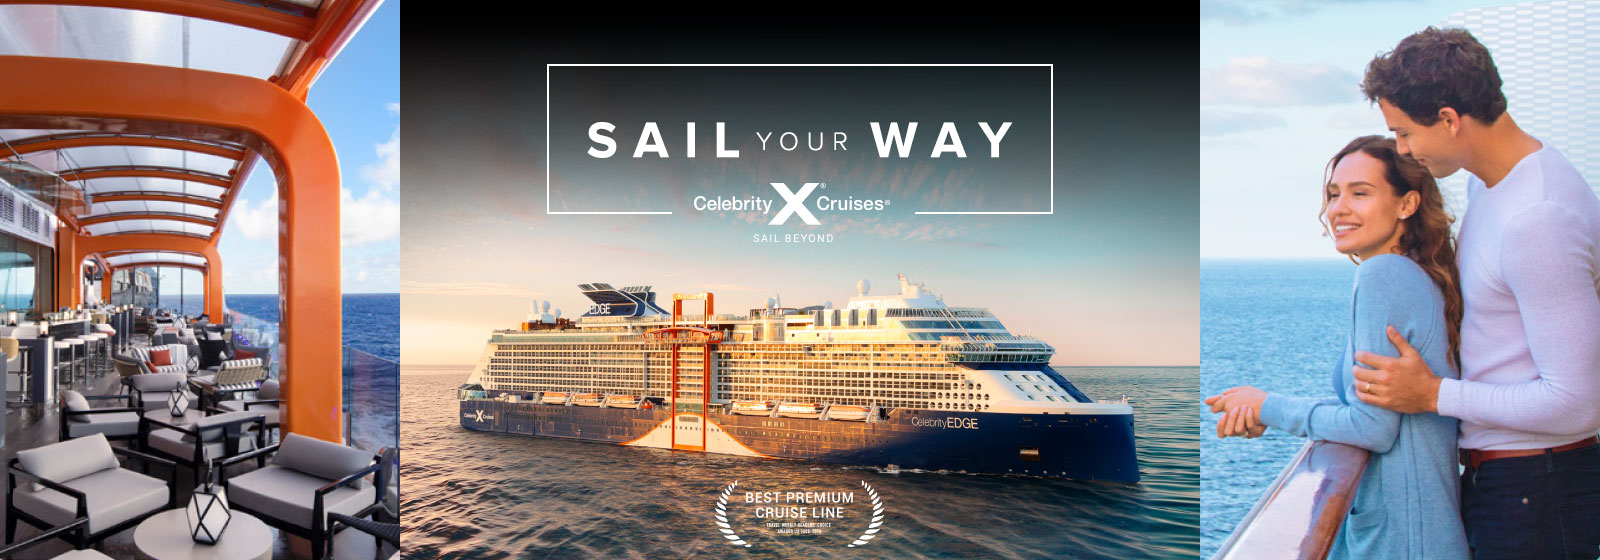 sail-your-way